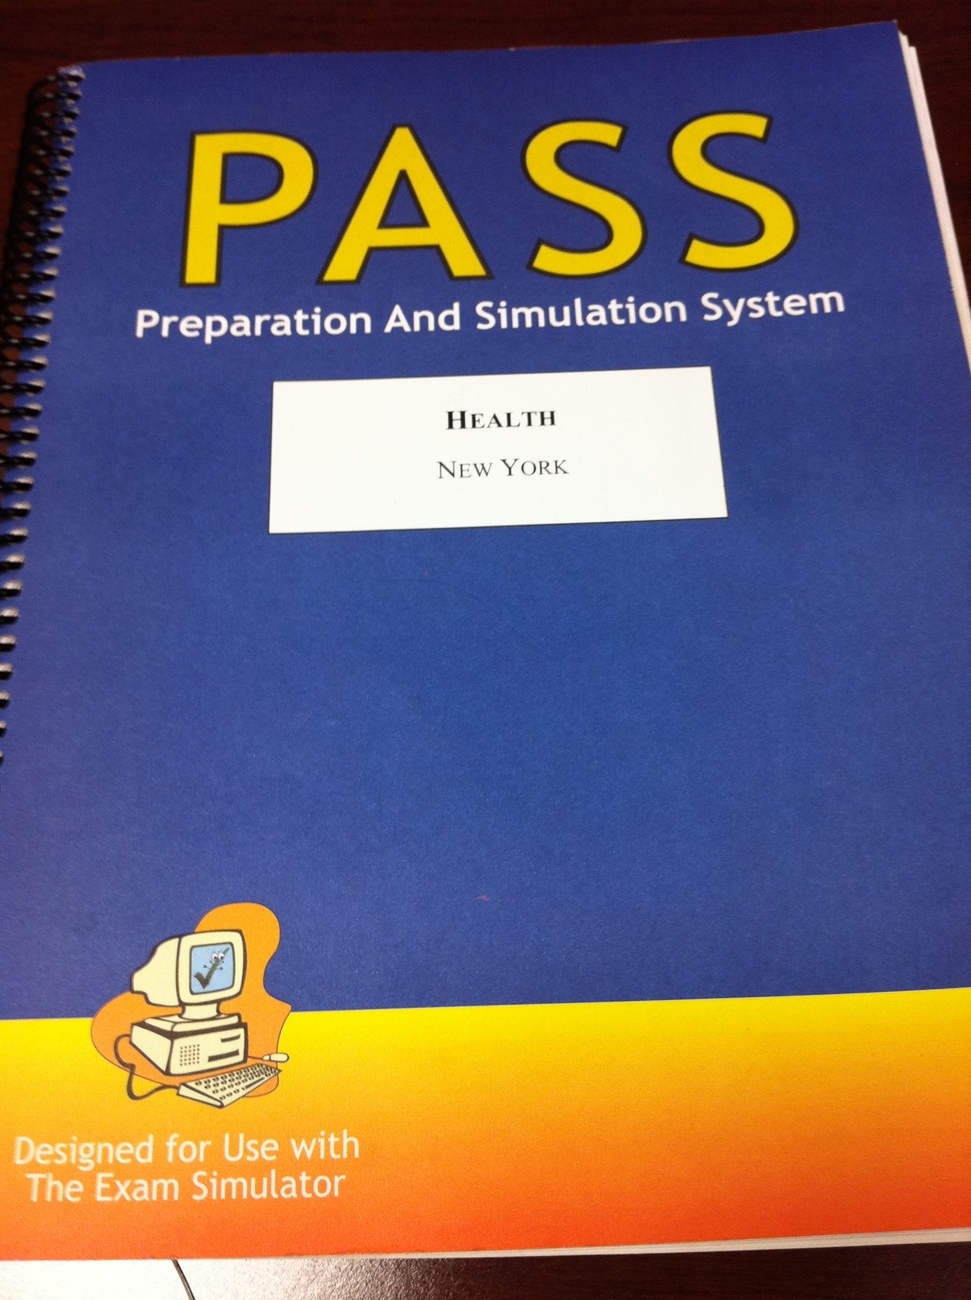 pass preparation and simulation system life health new york